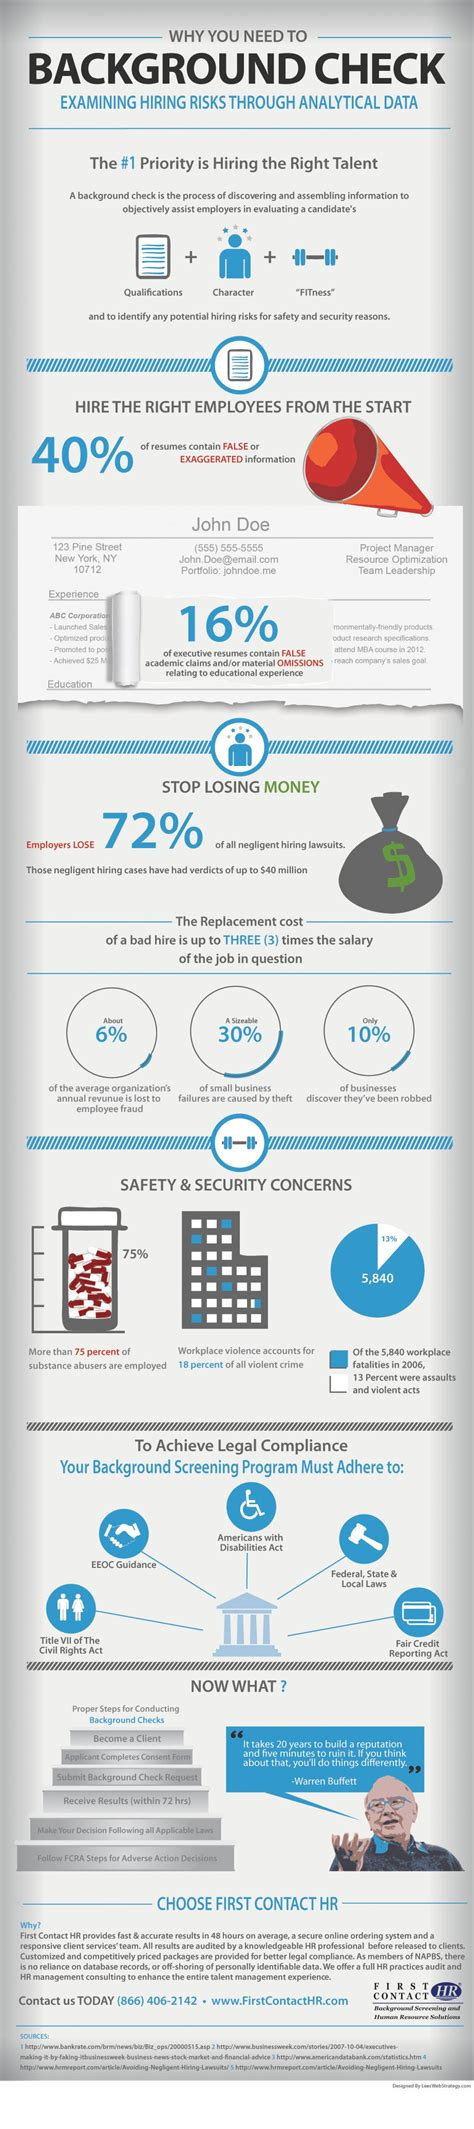 What Do I Need For A Background Check Why You Need To Background Check Infographic